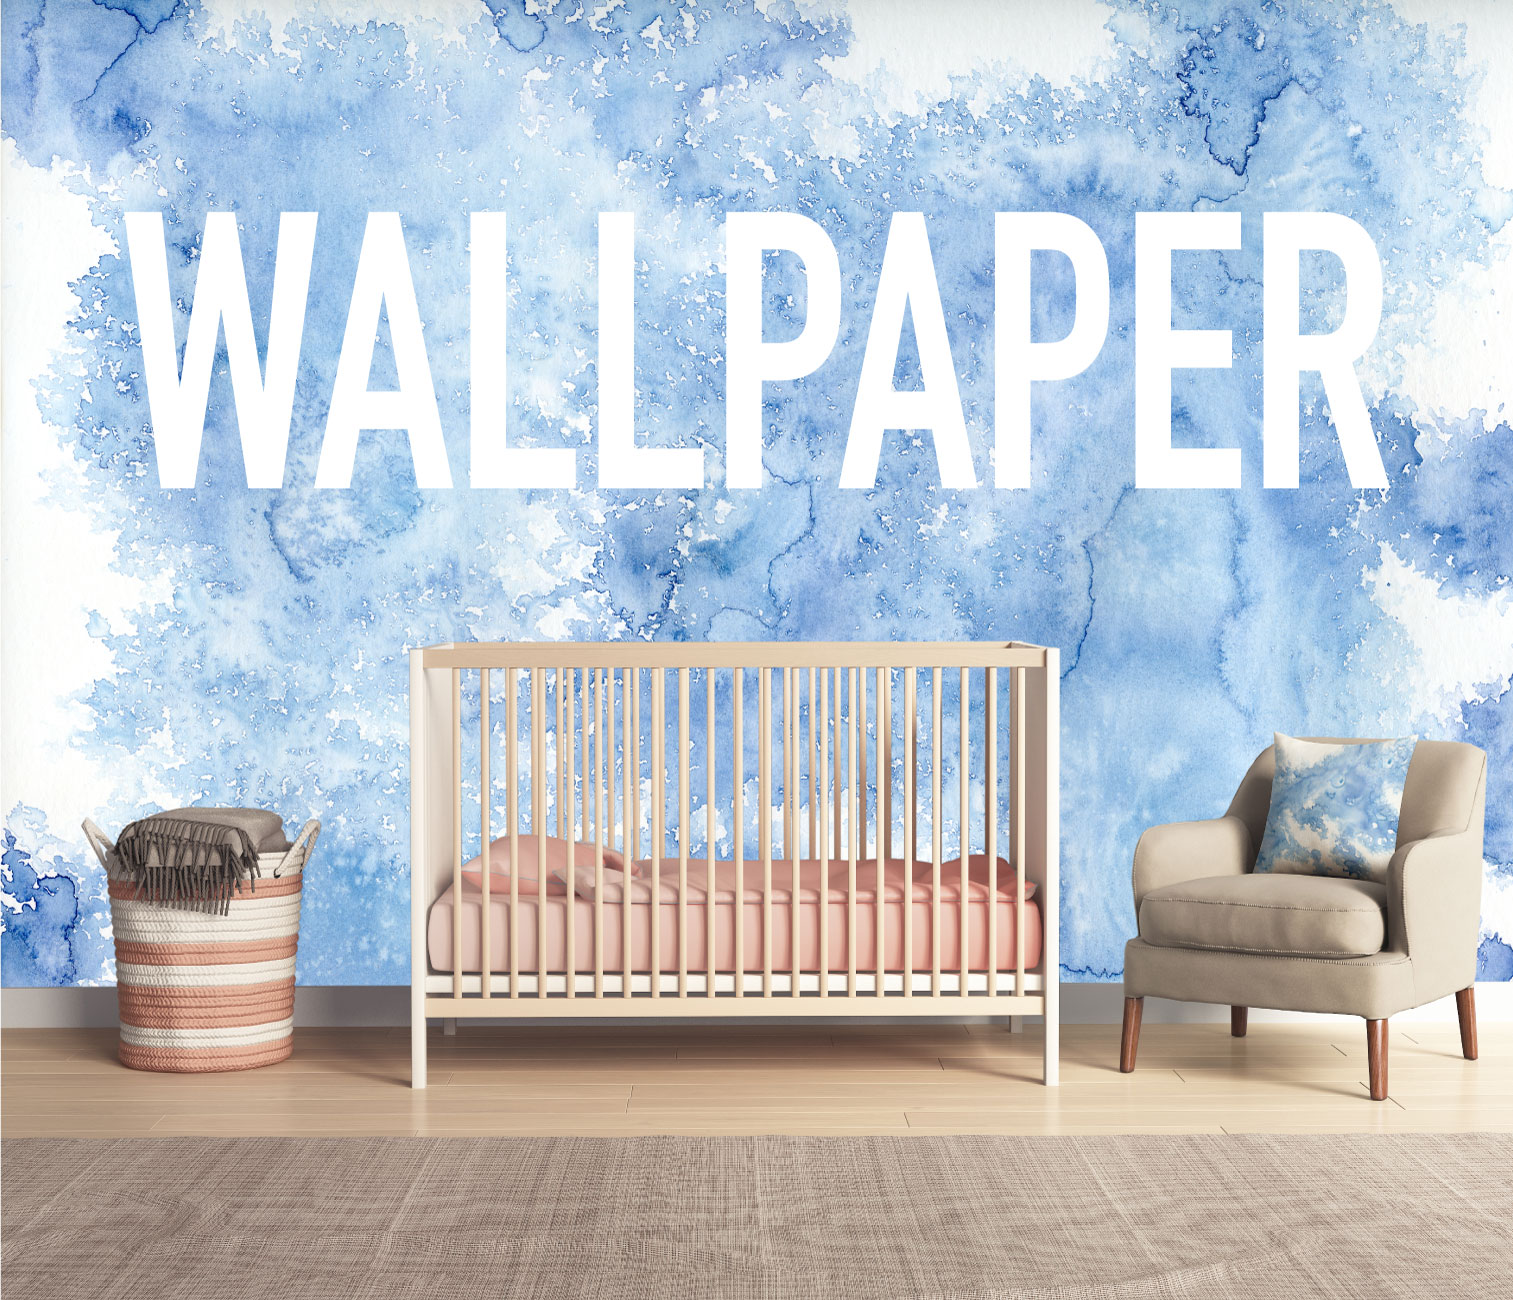 murals + patterns - choose from peel + stick or pre-pasted substrates